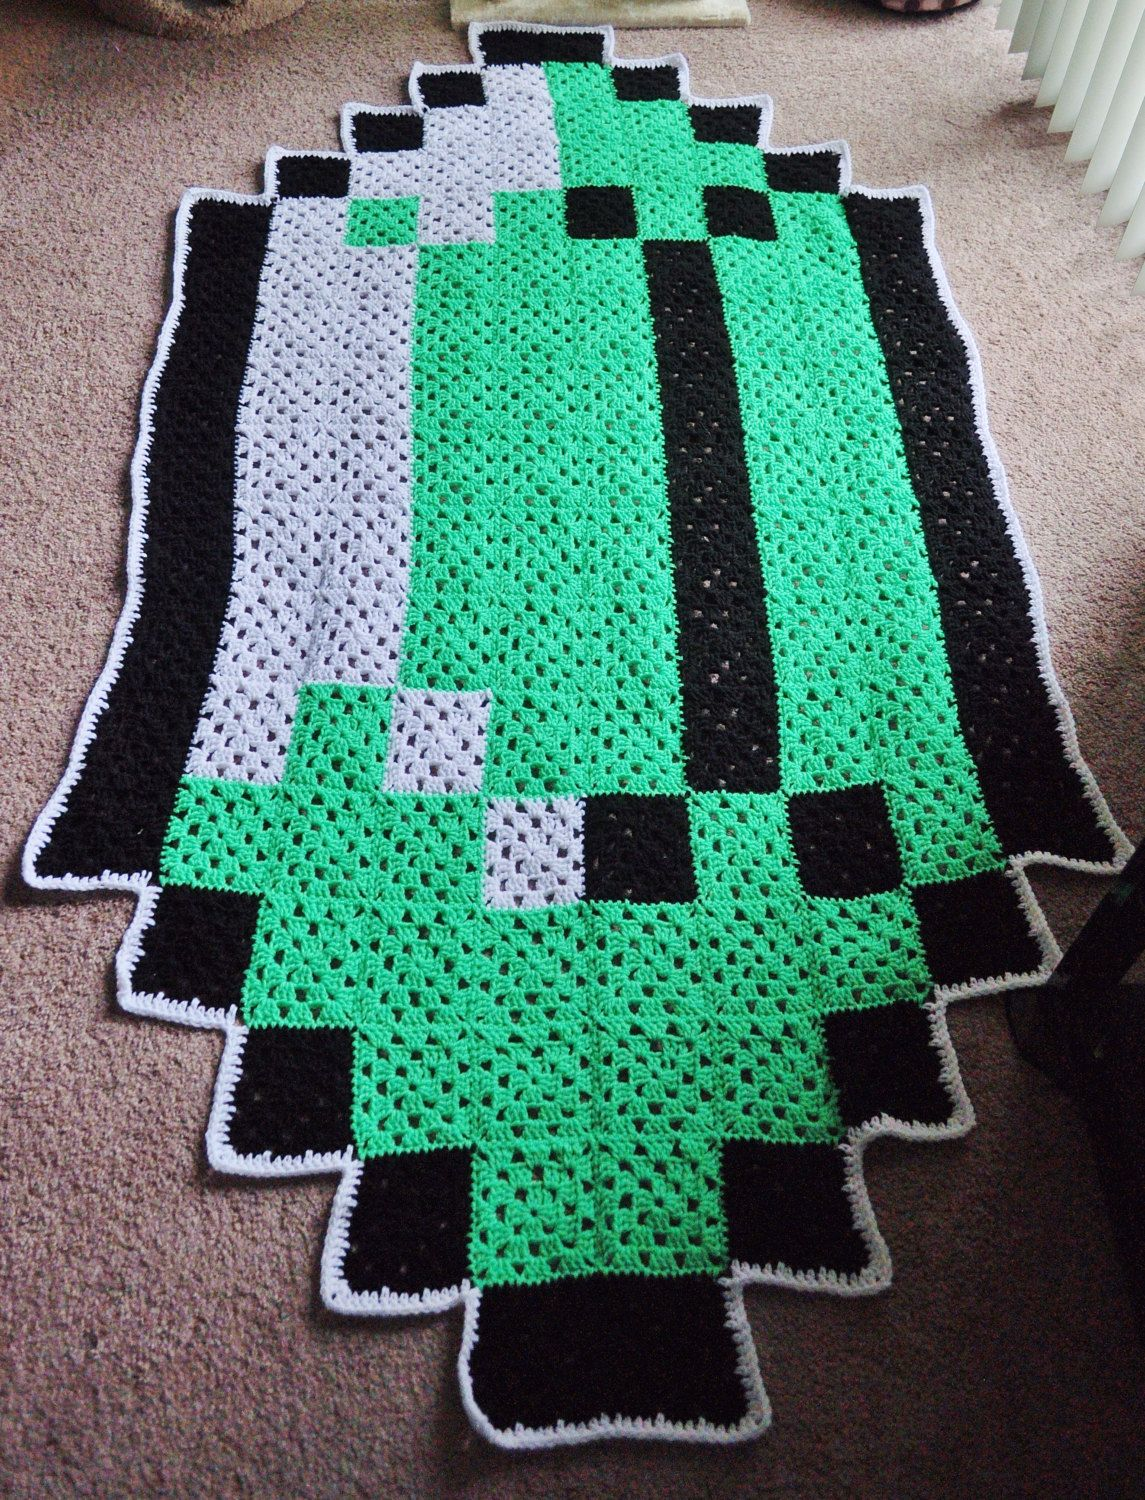 Gaming Teppich Large Zelda Inspired Rupee Pixel Crochet Rug By